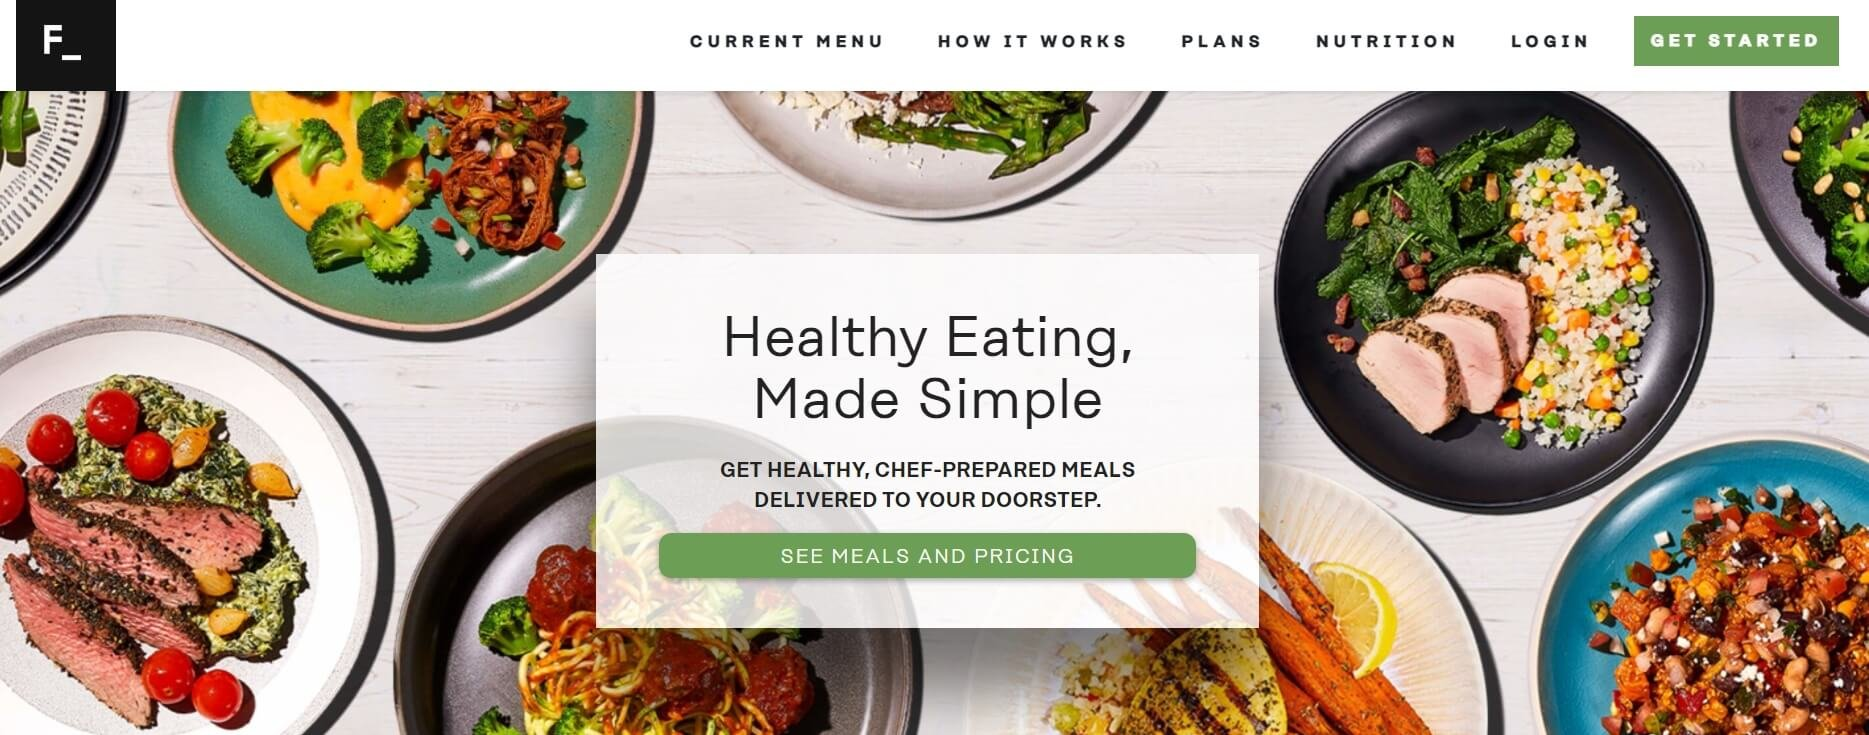 Factor Meals on ReadSomeReviews